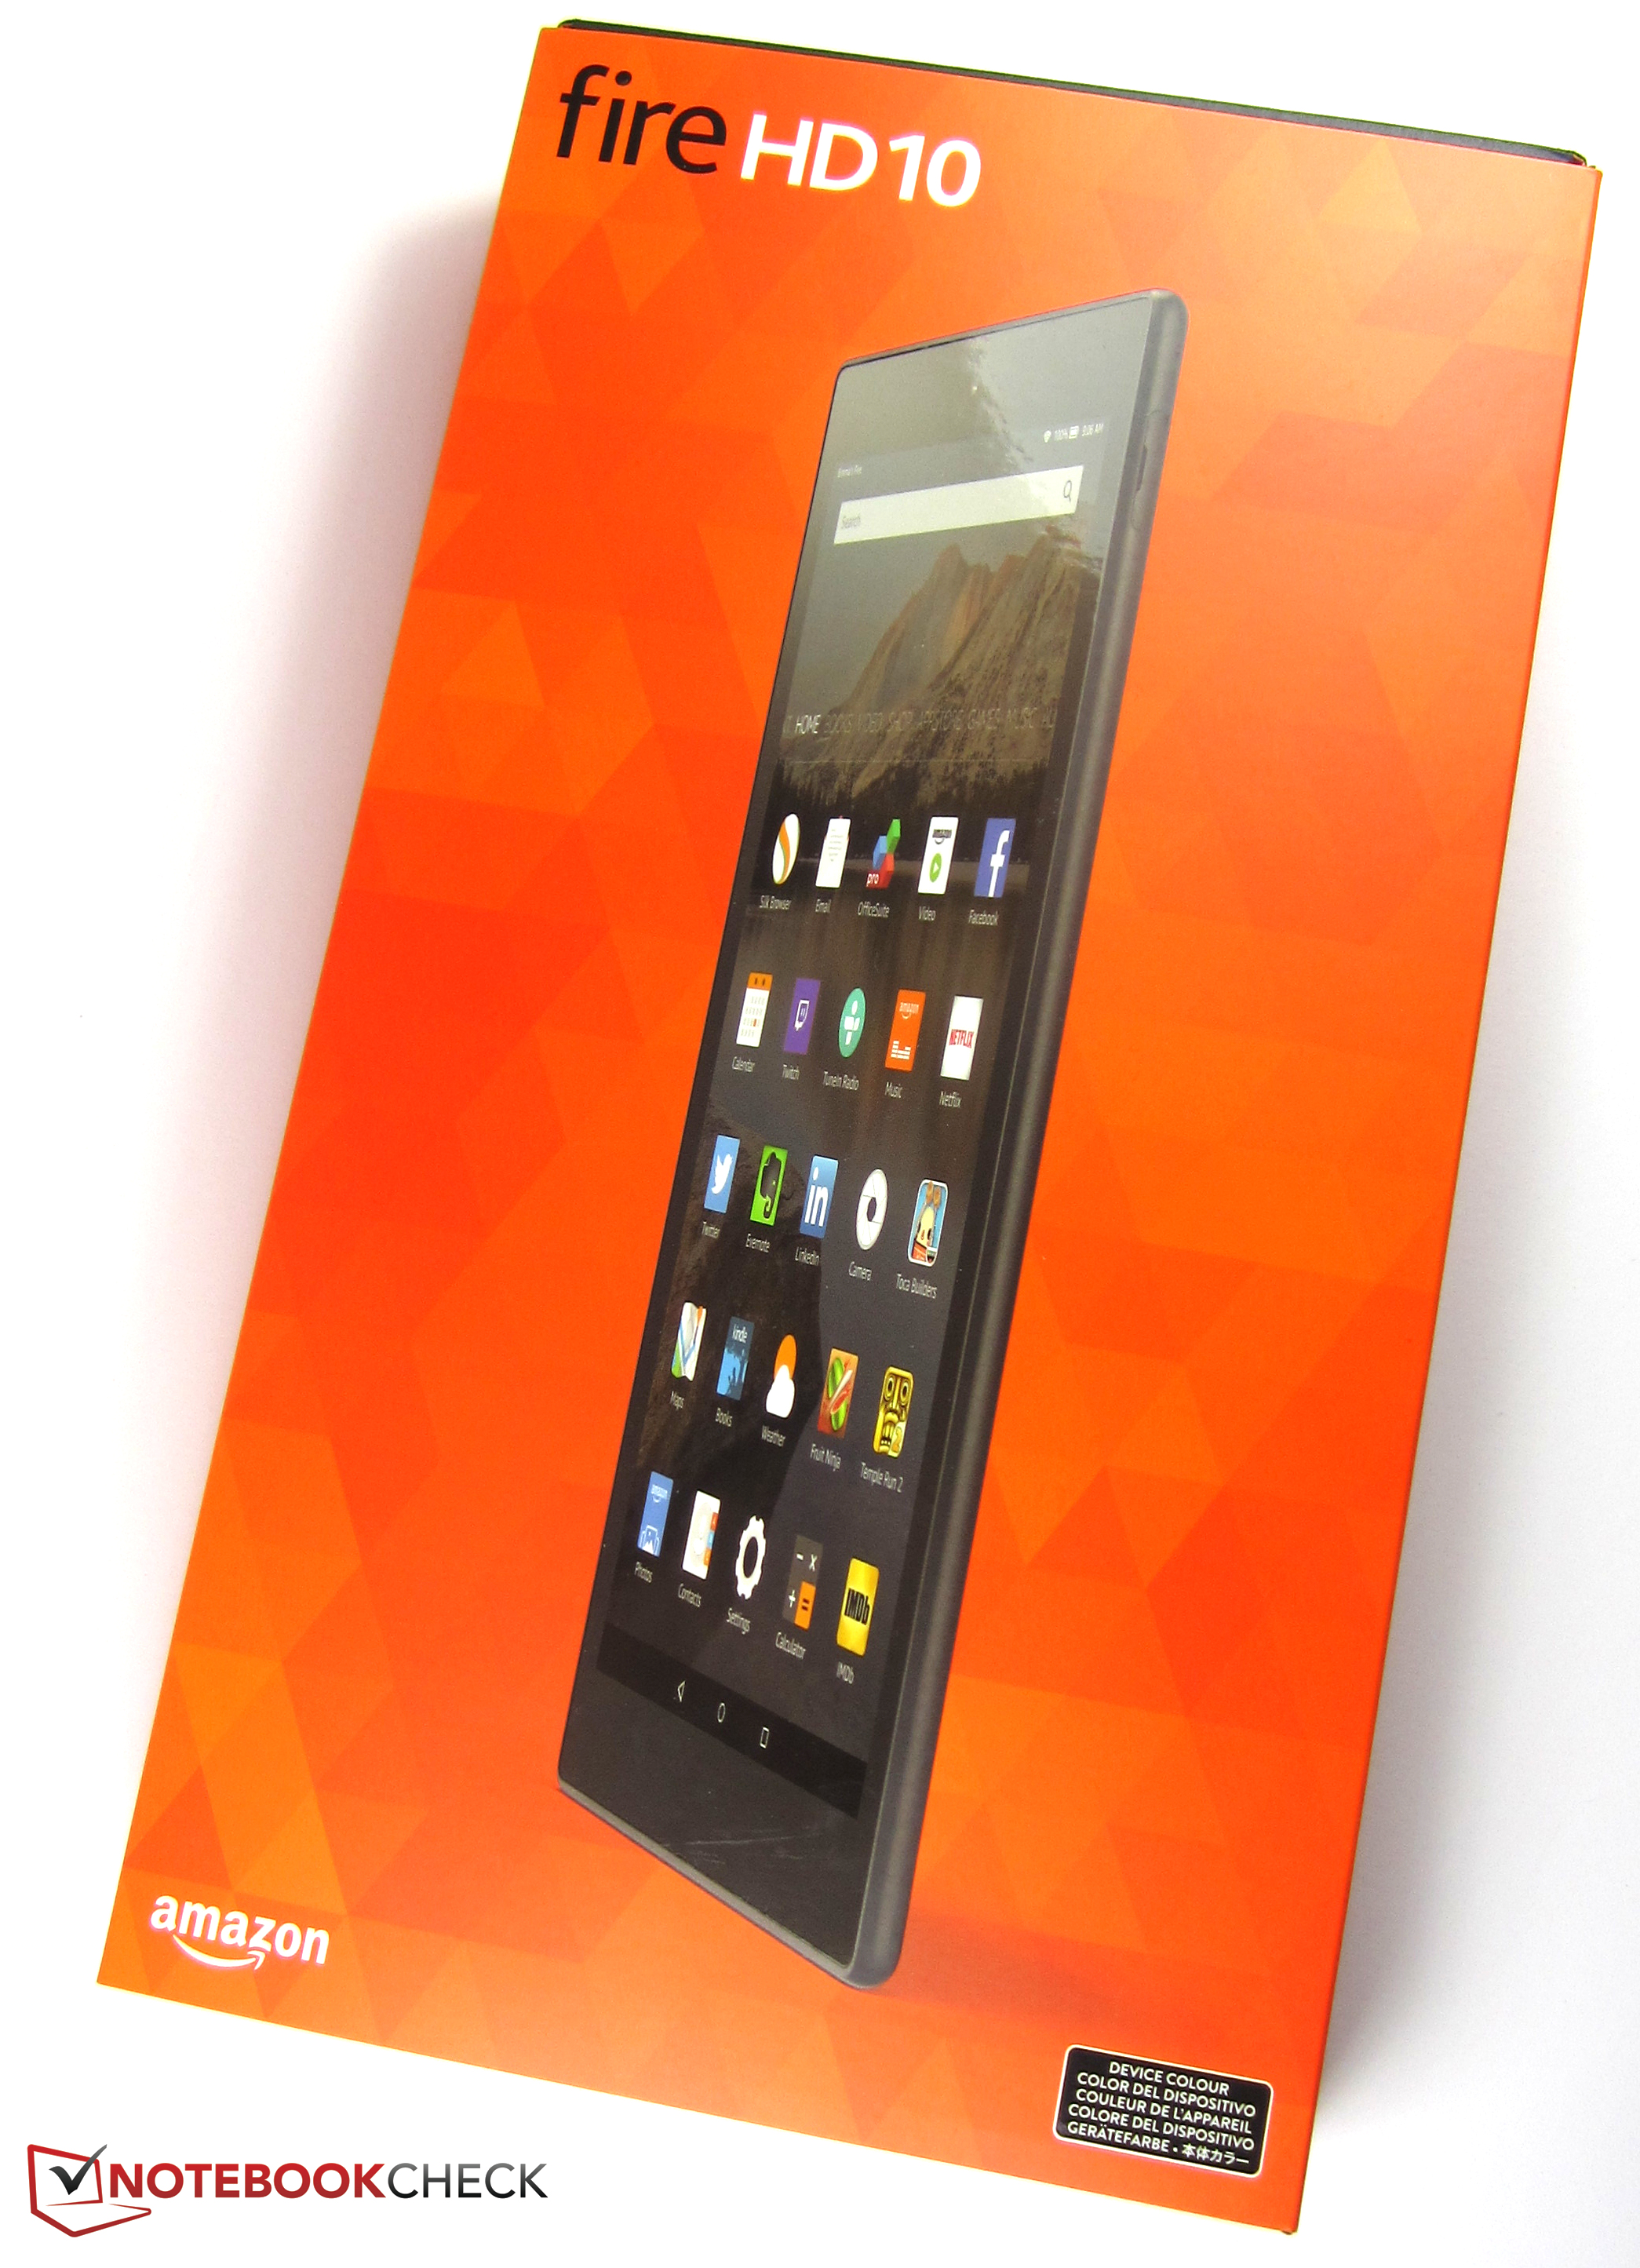 Amazon Fire HD 10 (2015) Tablet Review